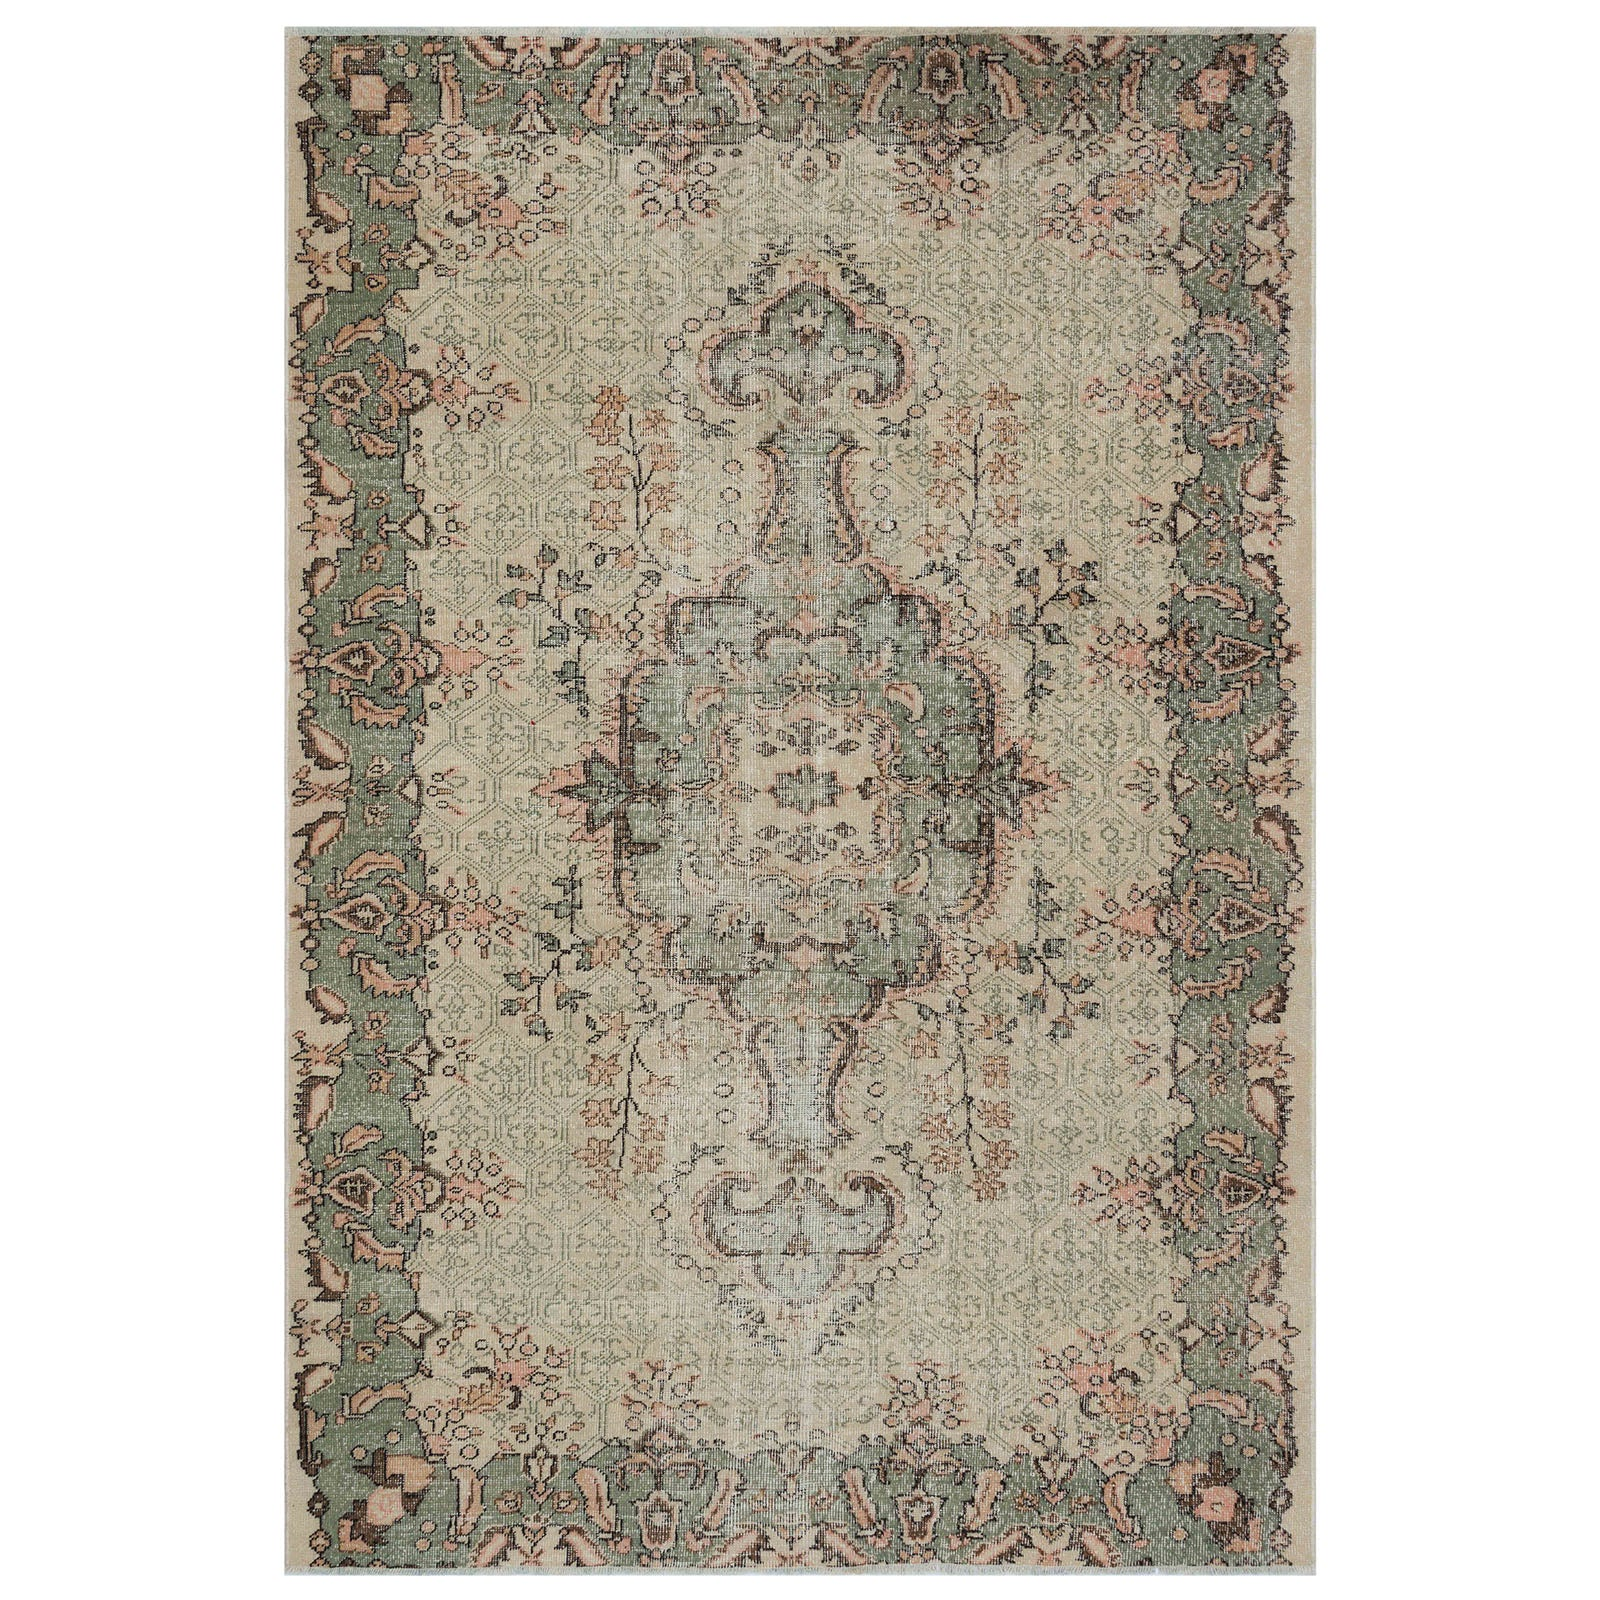 Hali 190X280 CM Bursa Handmade over dyed rug 1783 -  190*280 سجاده بورصة صناعة يدوية على بساط مصبوغ - Shop Online Furniture and Home Decor Store in Dubai, UAE at ebarza